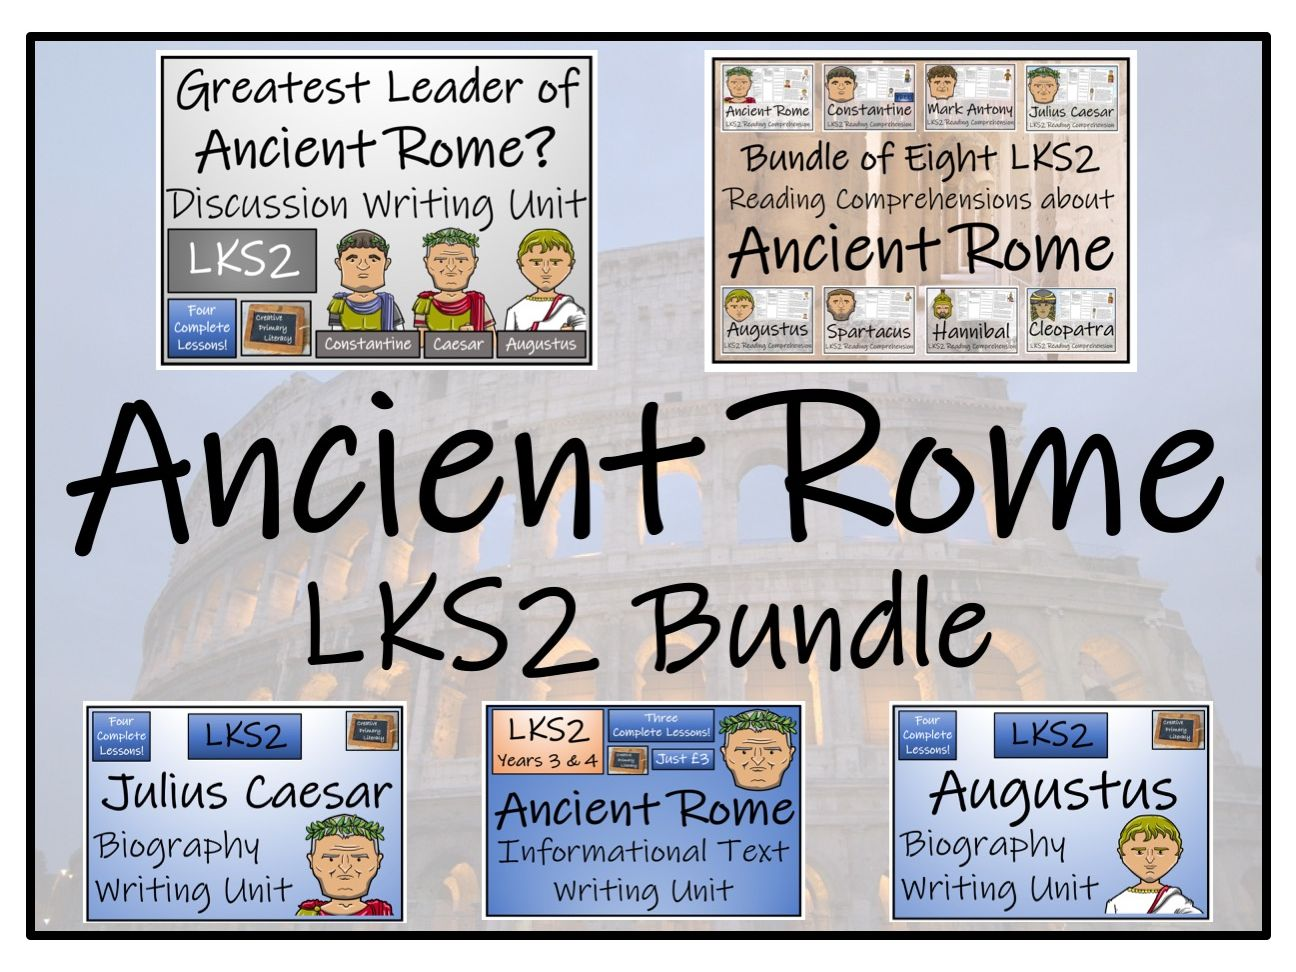 LKS2 Ancient Rome Reading Comprehension & Writing Bundle